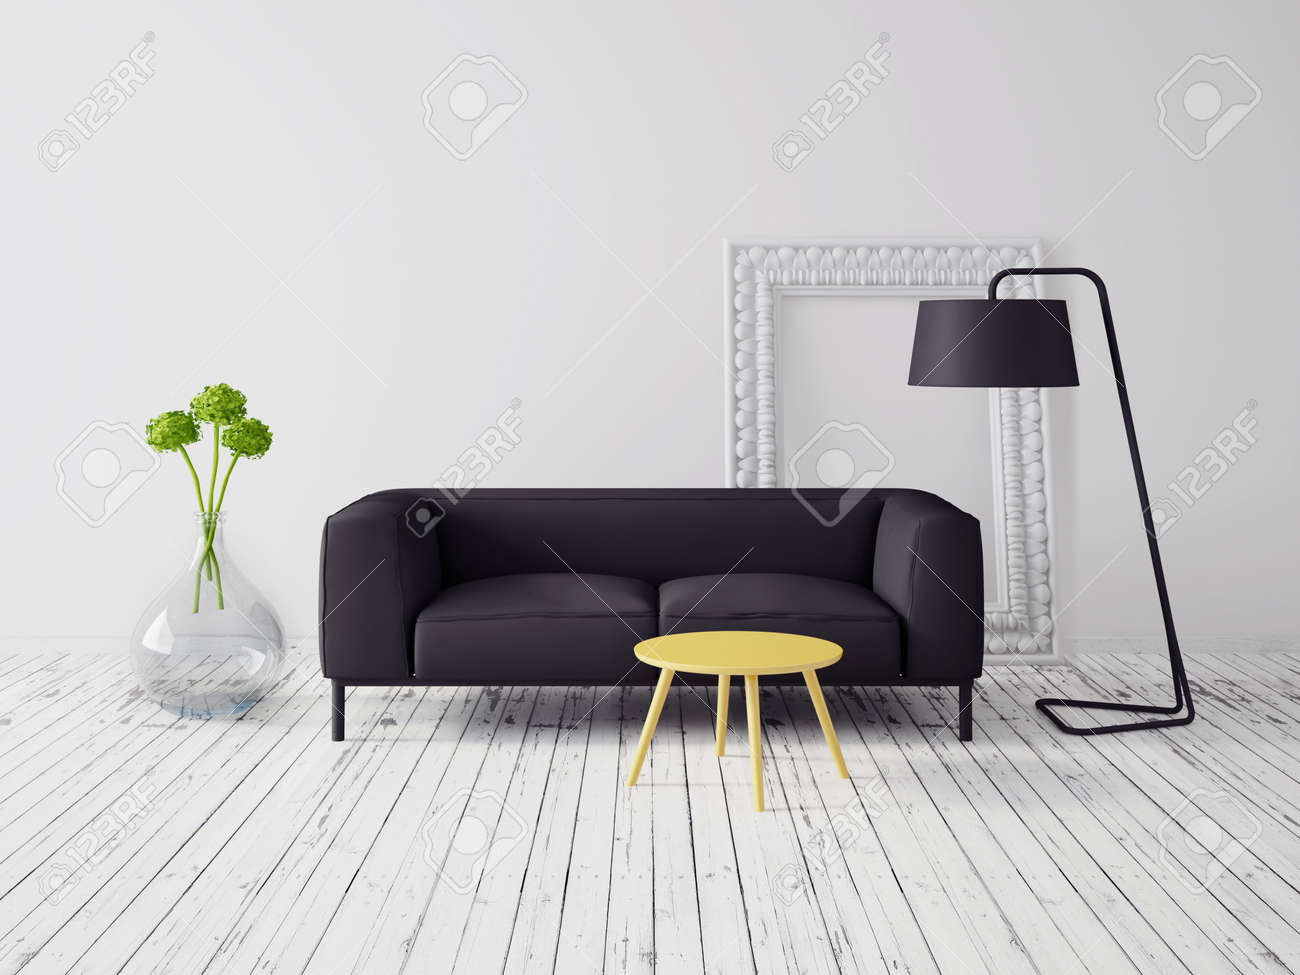 Living Room Modern Interior Furniture 3d render modern inter with a beautiful furniture stock photo furniture